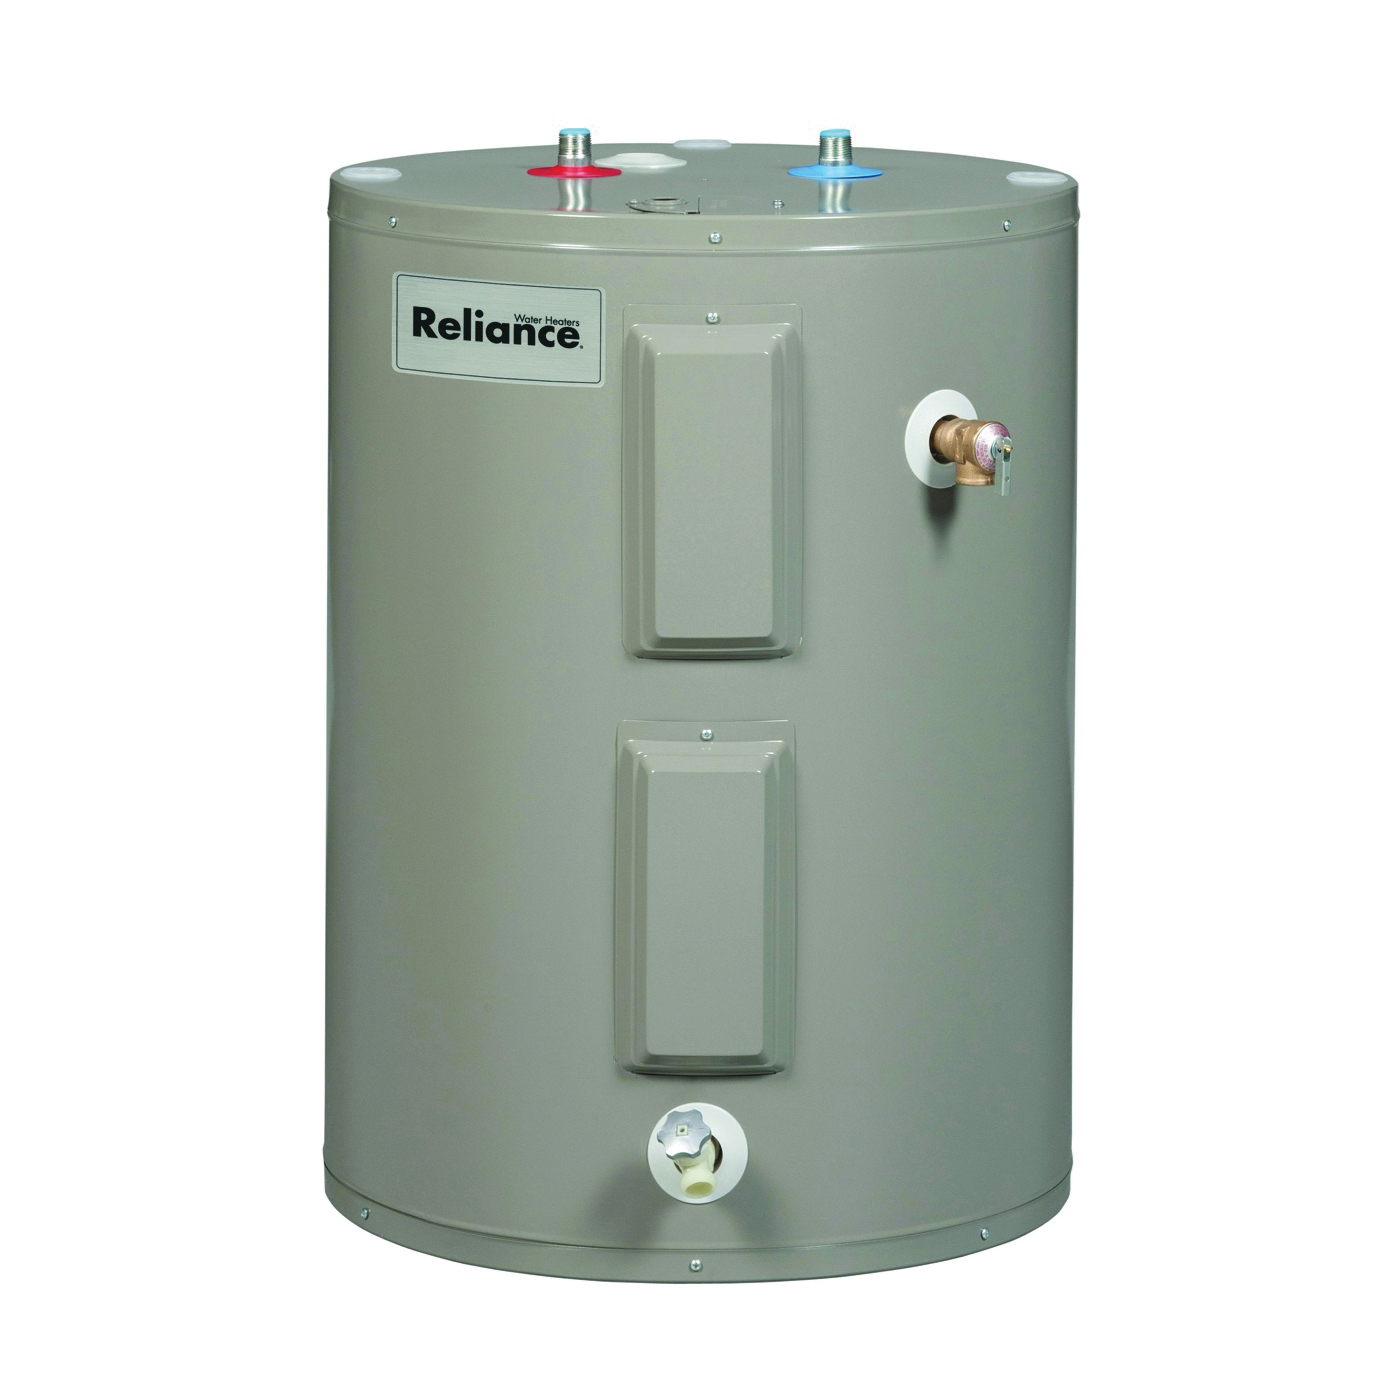 Picture of Reliance 6 50 EORS Electric Water Heater, 30 A, 240 V, 6000 W, 50 gal Tank, 92 % Energy Efficiency